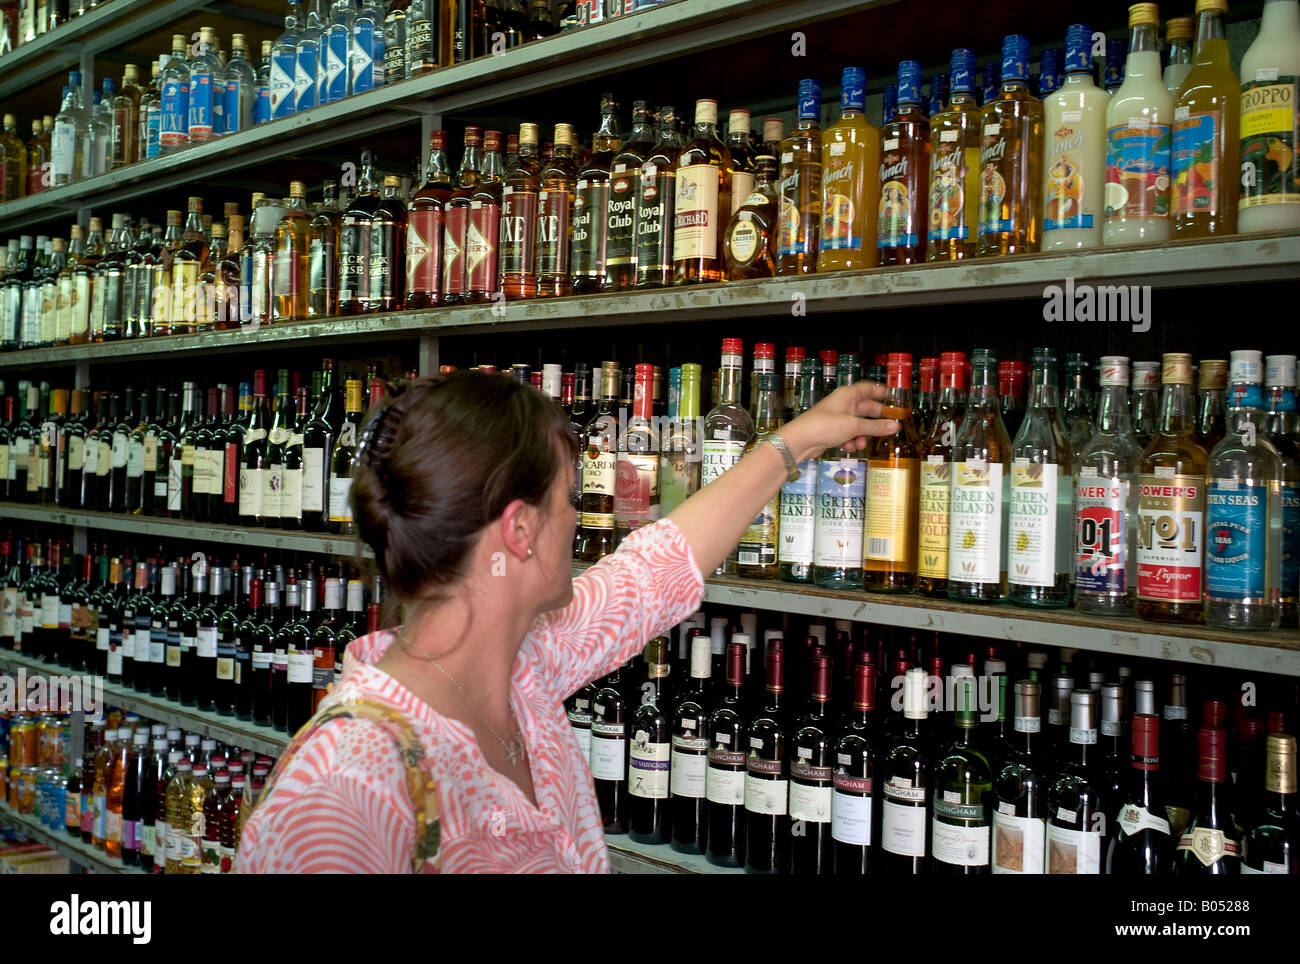 Woman shopping for alcohol in port louis market mauritius stock photo royalty free image - Mauritius market port louis ...